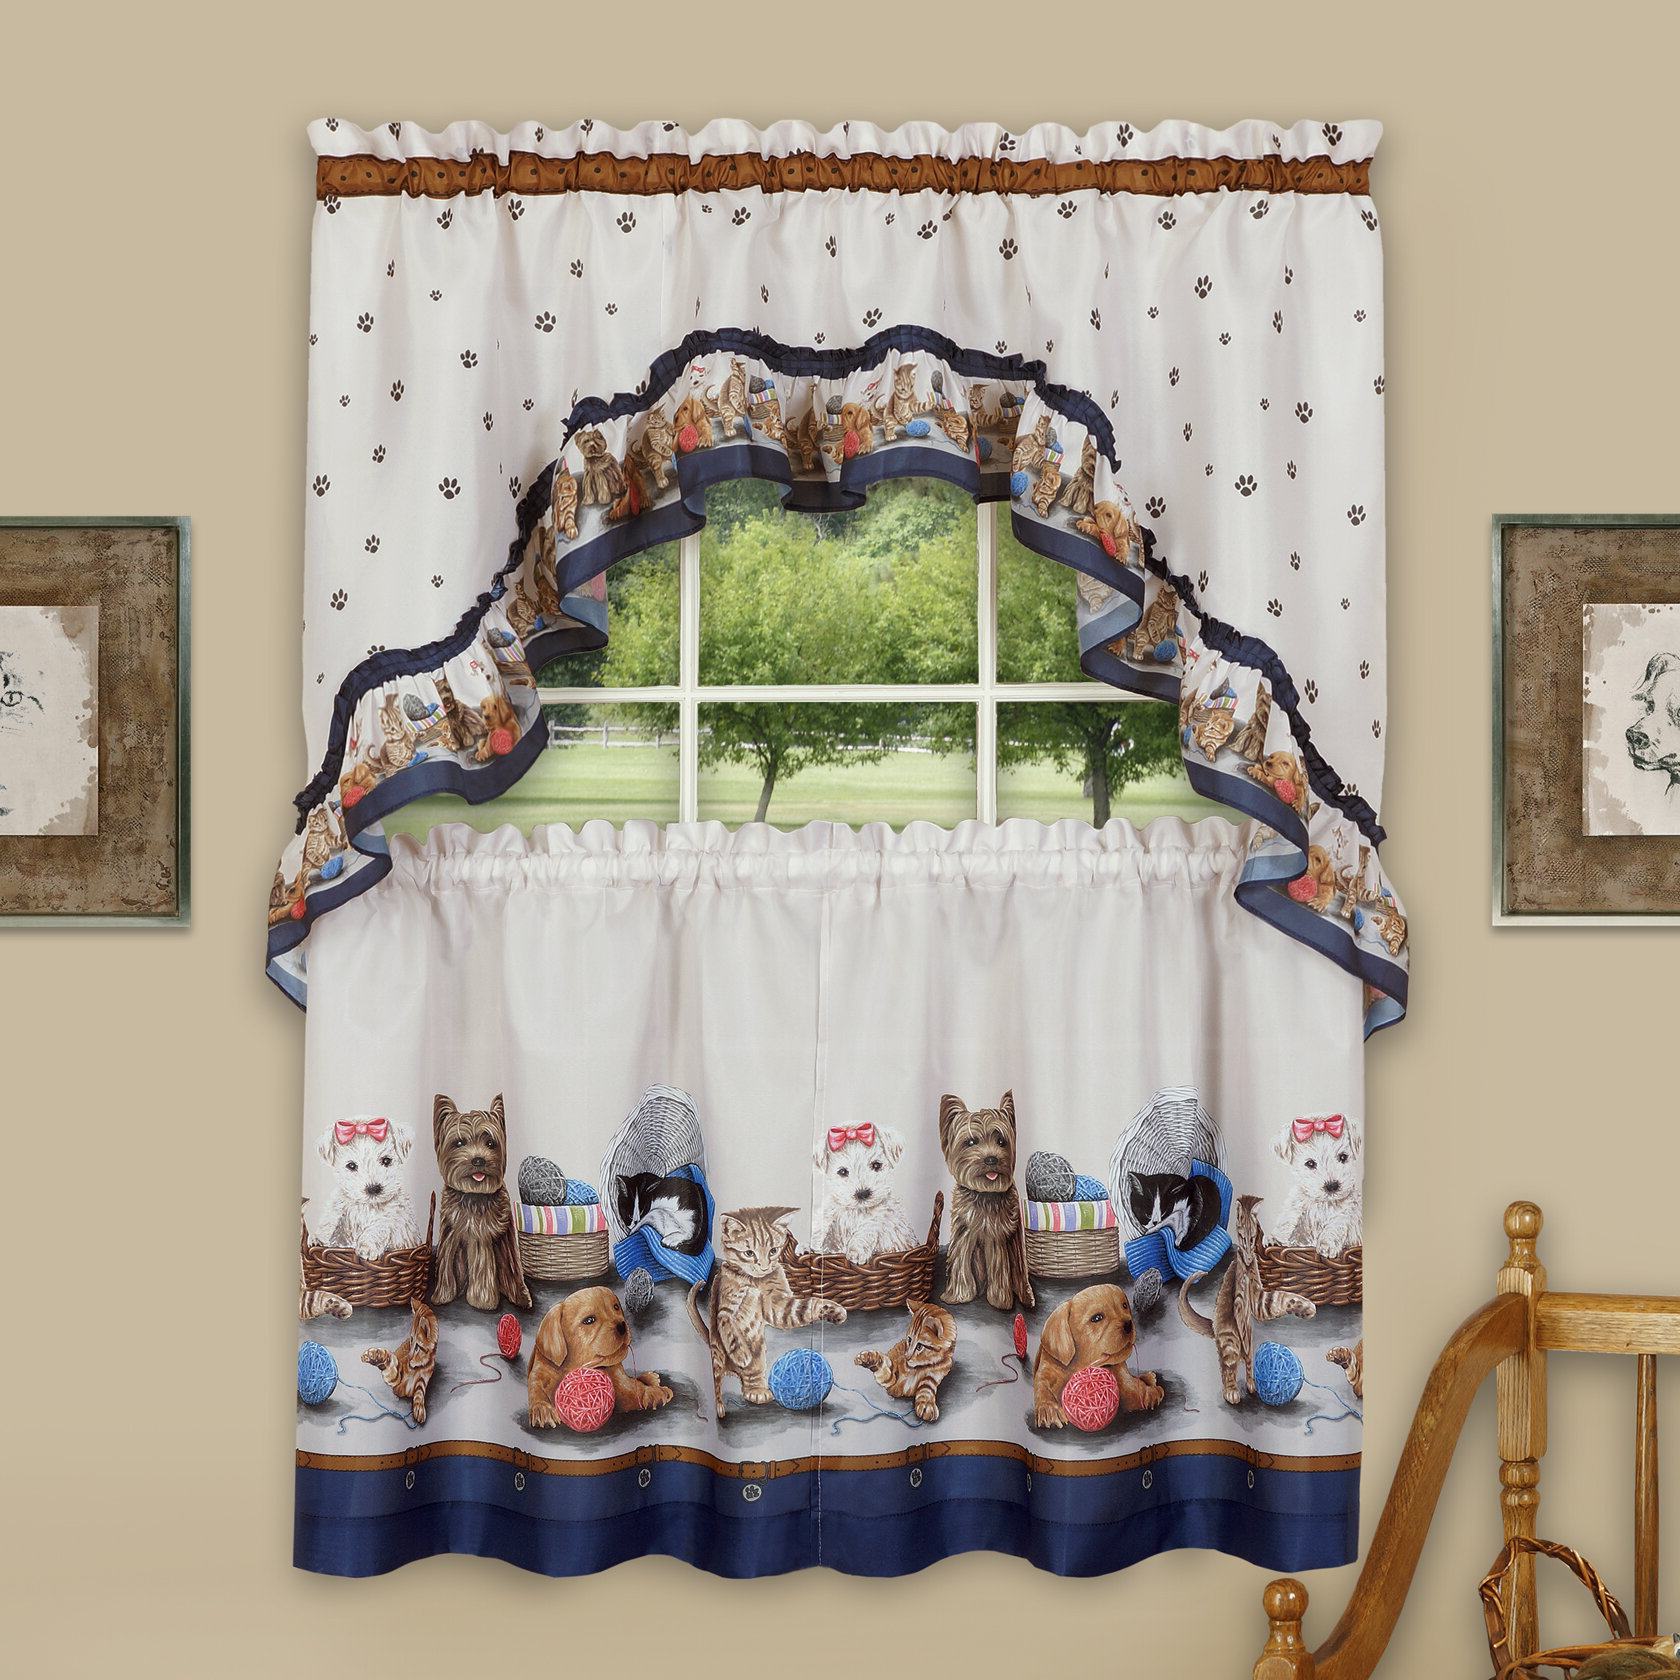 Popular Chocolate 5 Piece Curtain Tier And Swag Sets Regarding Wieczorek Precious Tier And Swag 3 Piece Kitchen Curtain Set (View 17 of 20)